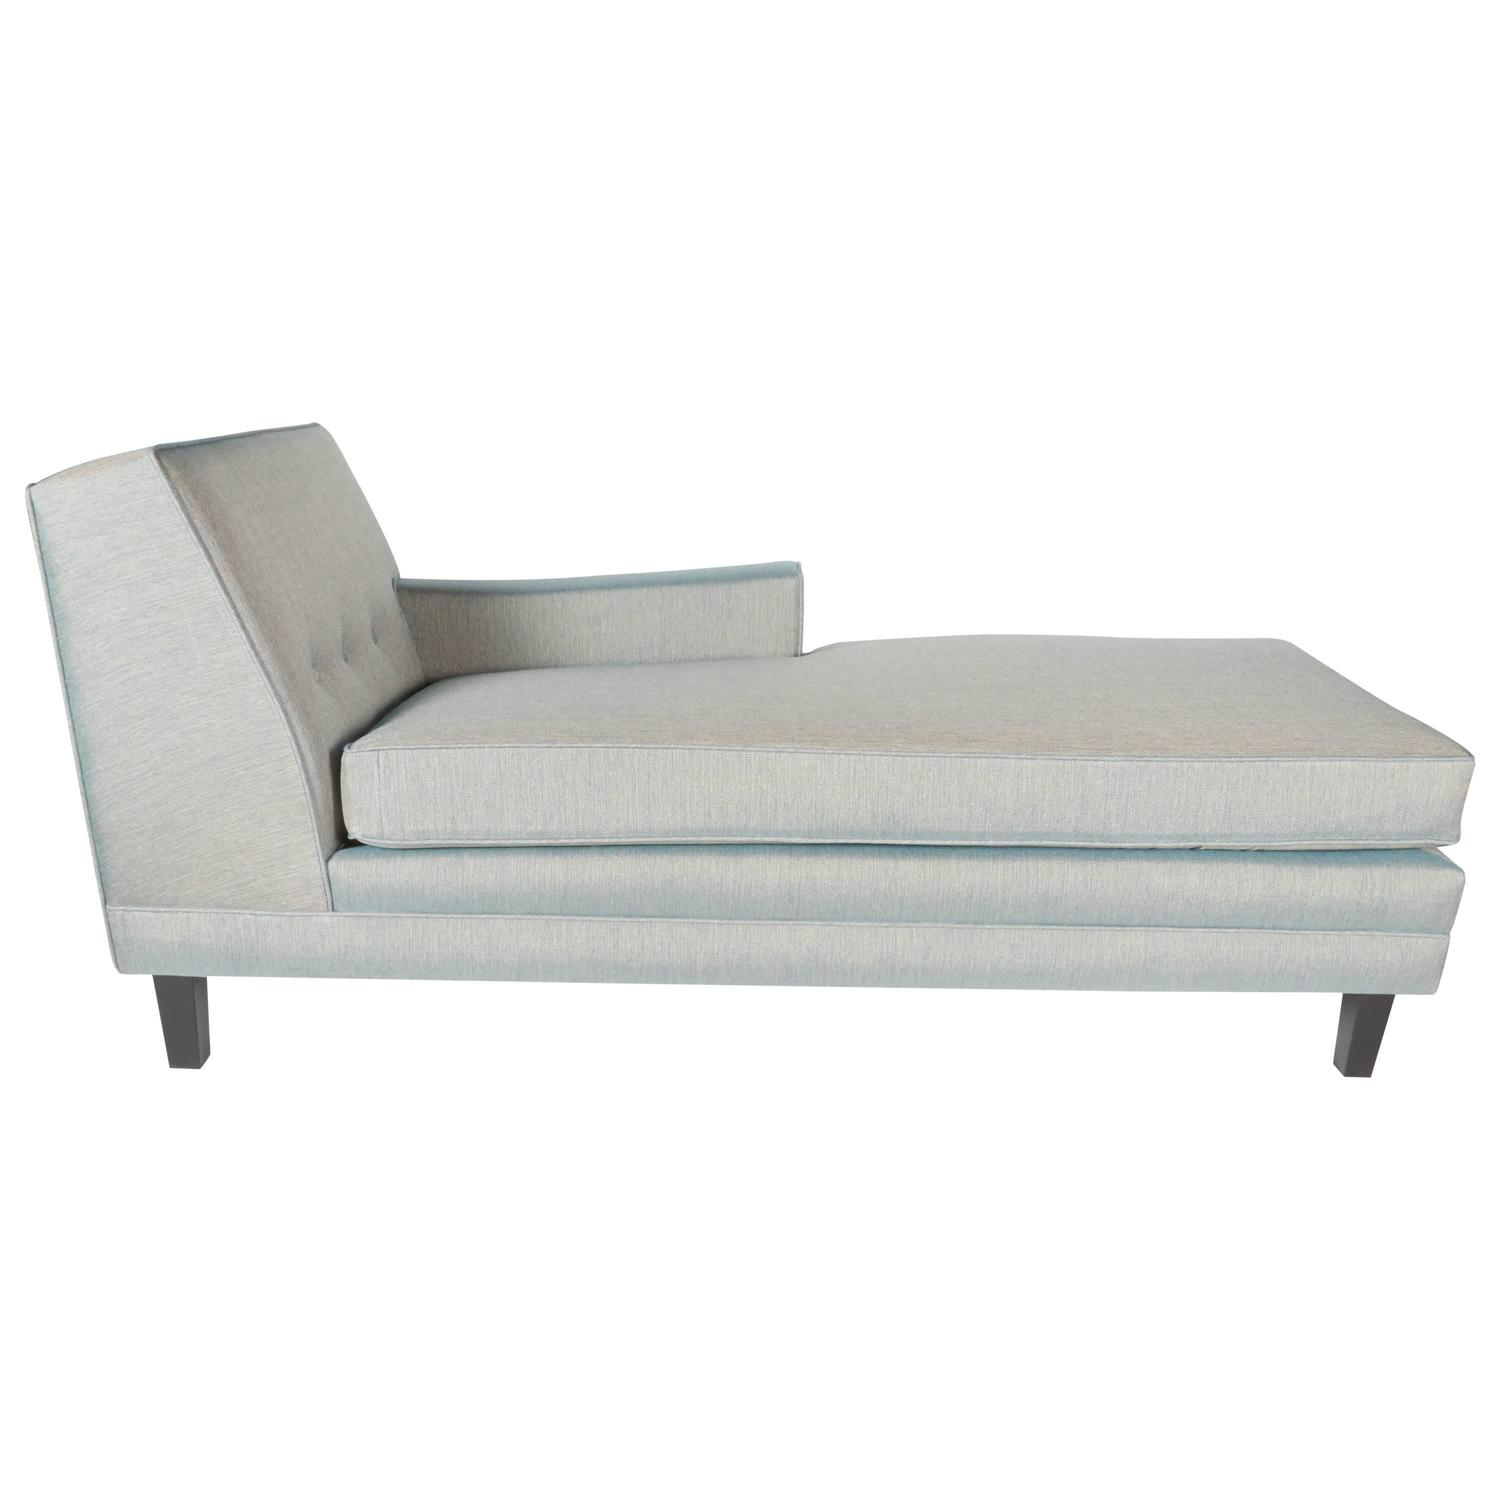 Chaiselongue modern  Mid-Century Modern Chaise Lounge with Low Profile Design at 1stdibs